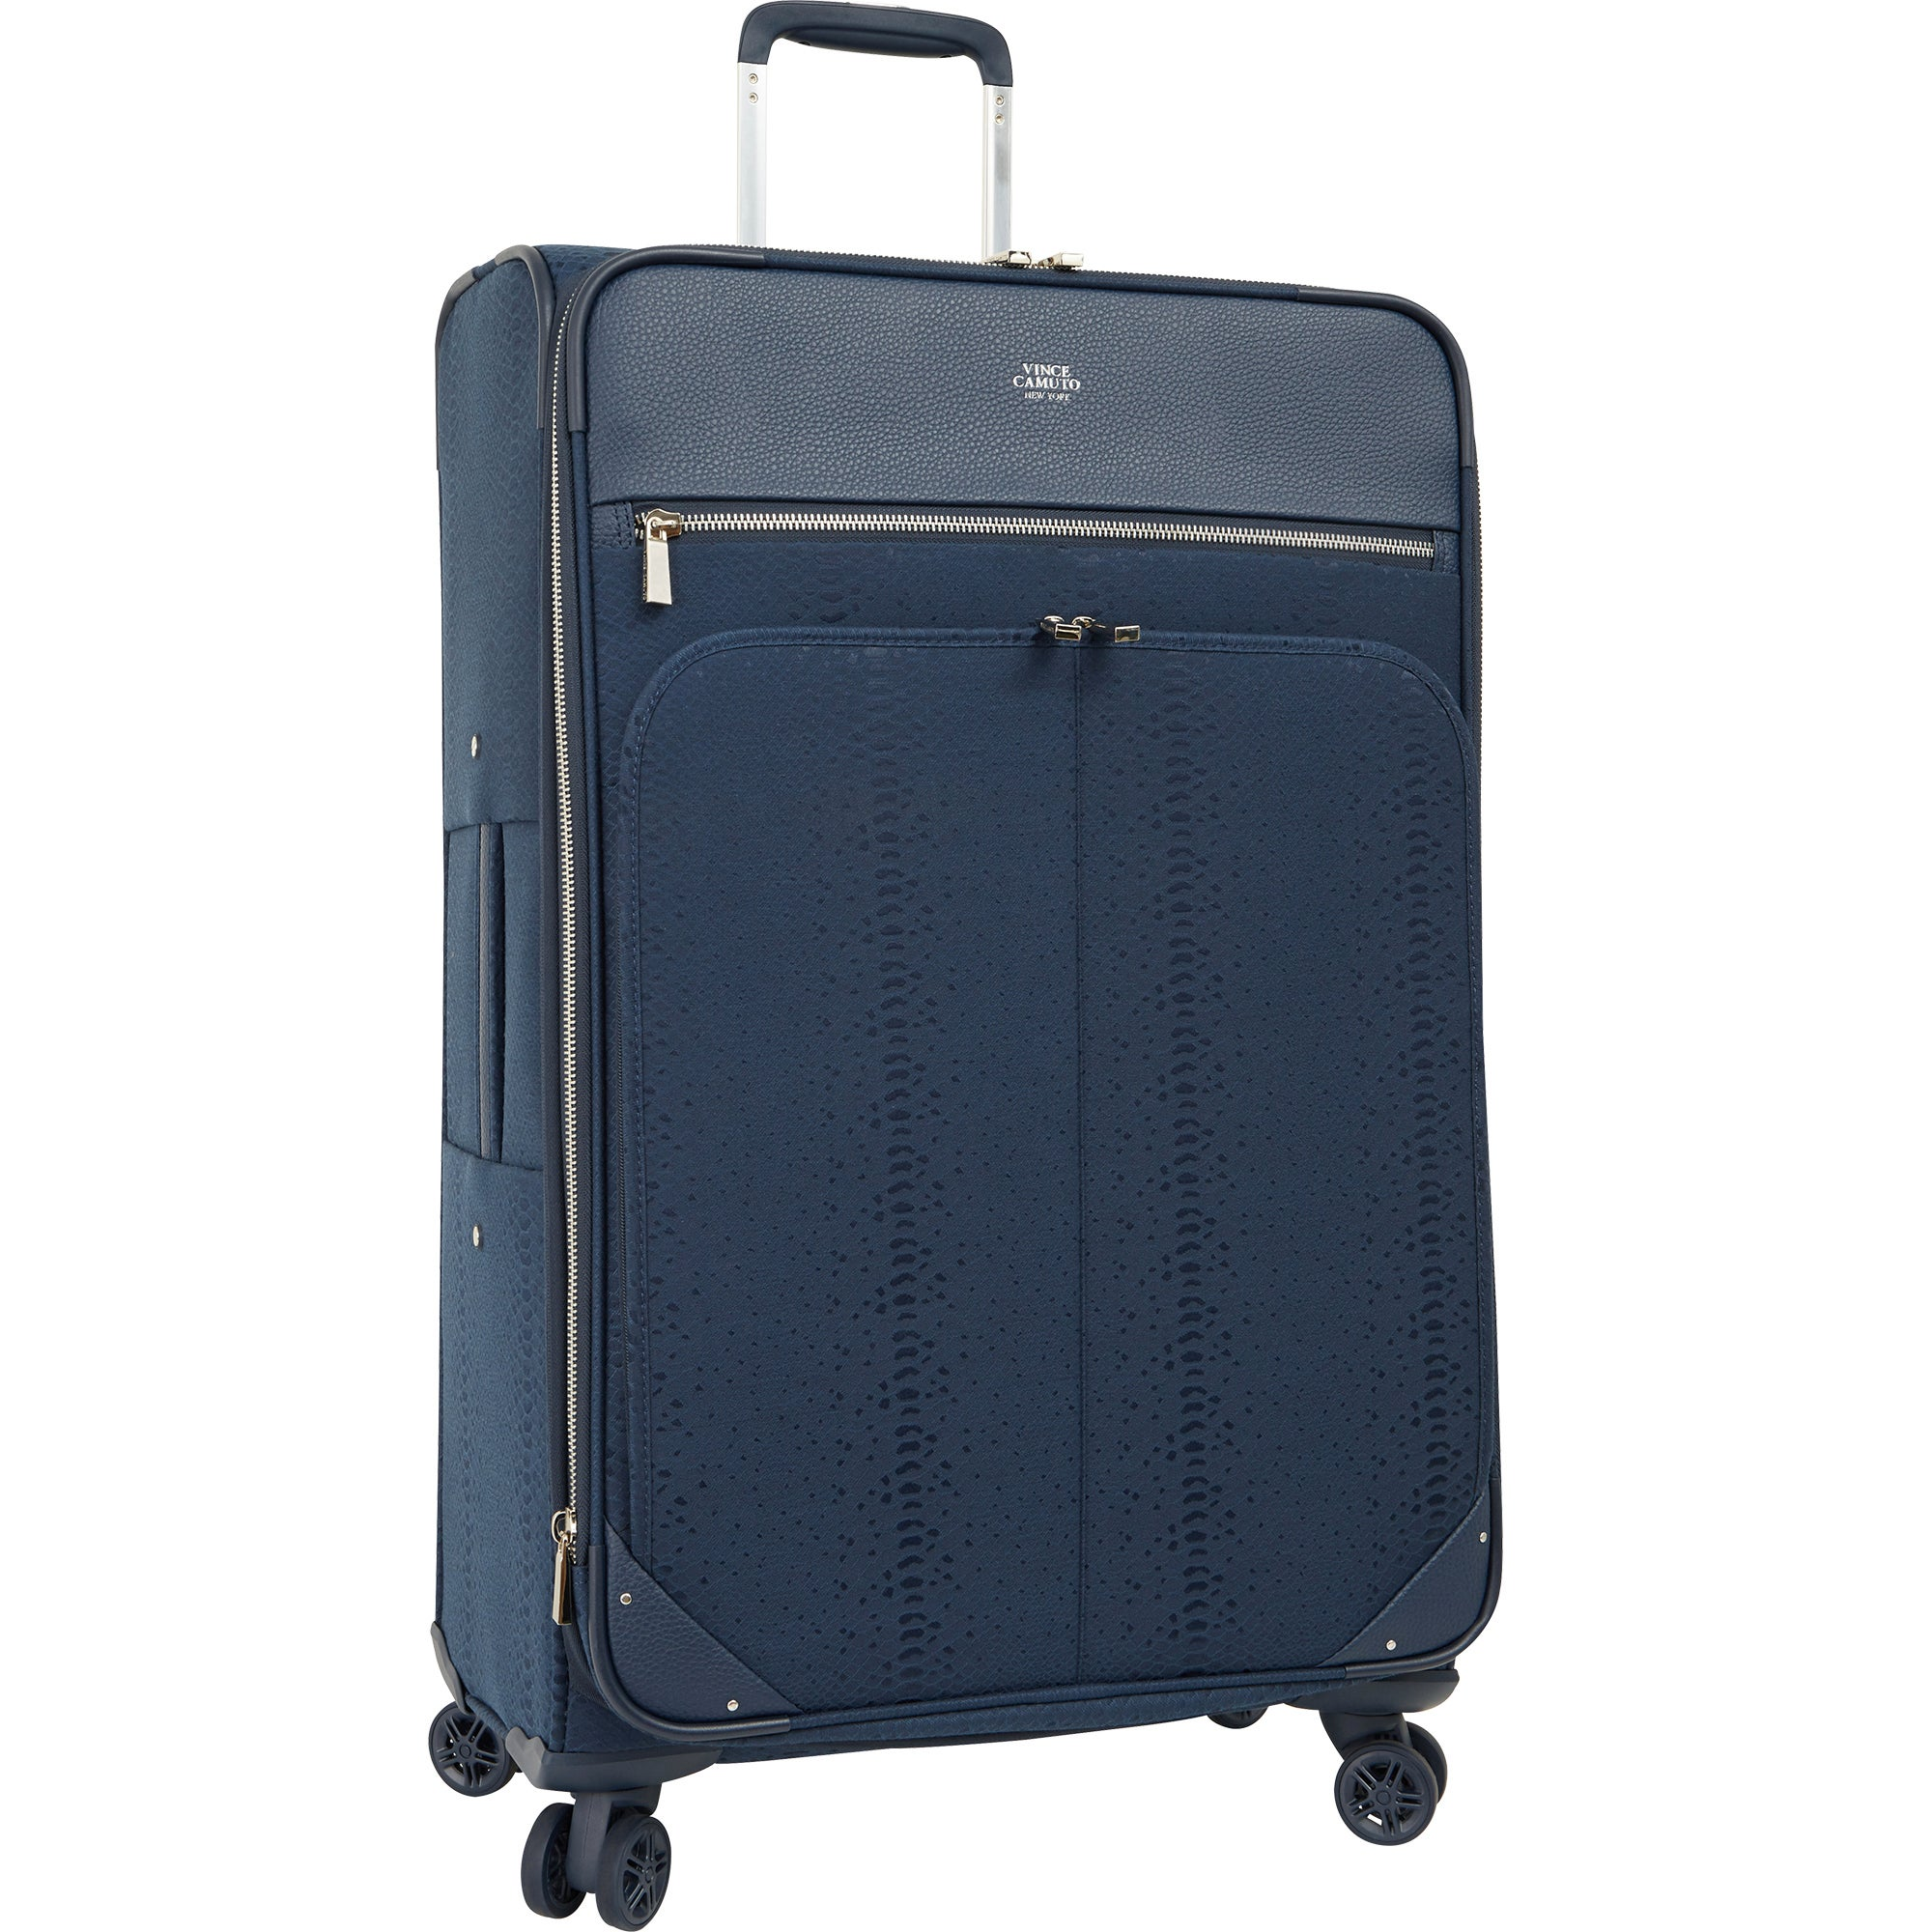 c4328969b Shop Vince Camuto Ameliah 24-inch Expandable Spinner Upright Suitcase - Free  Shipping Today - Overstock - 20192707